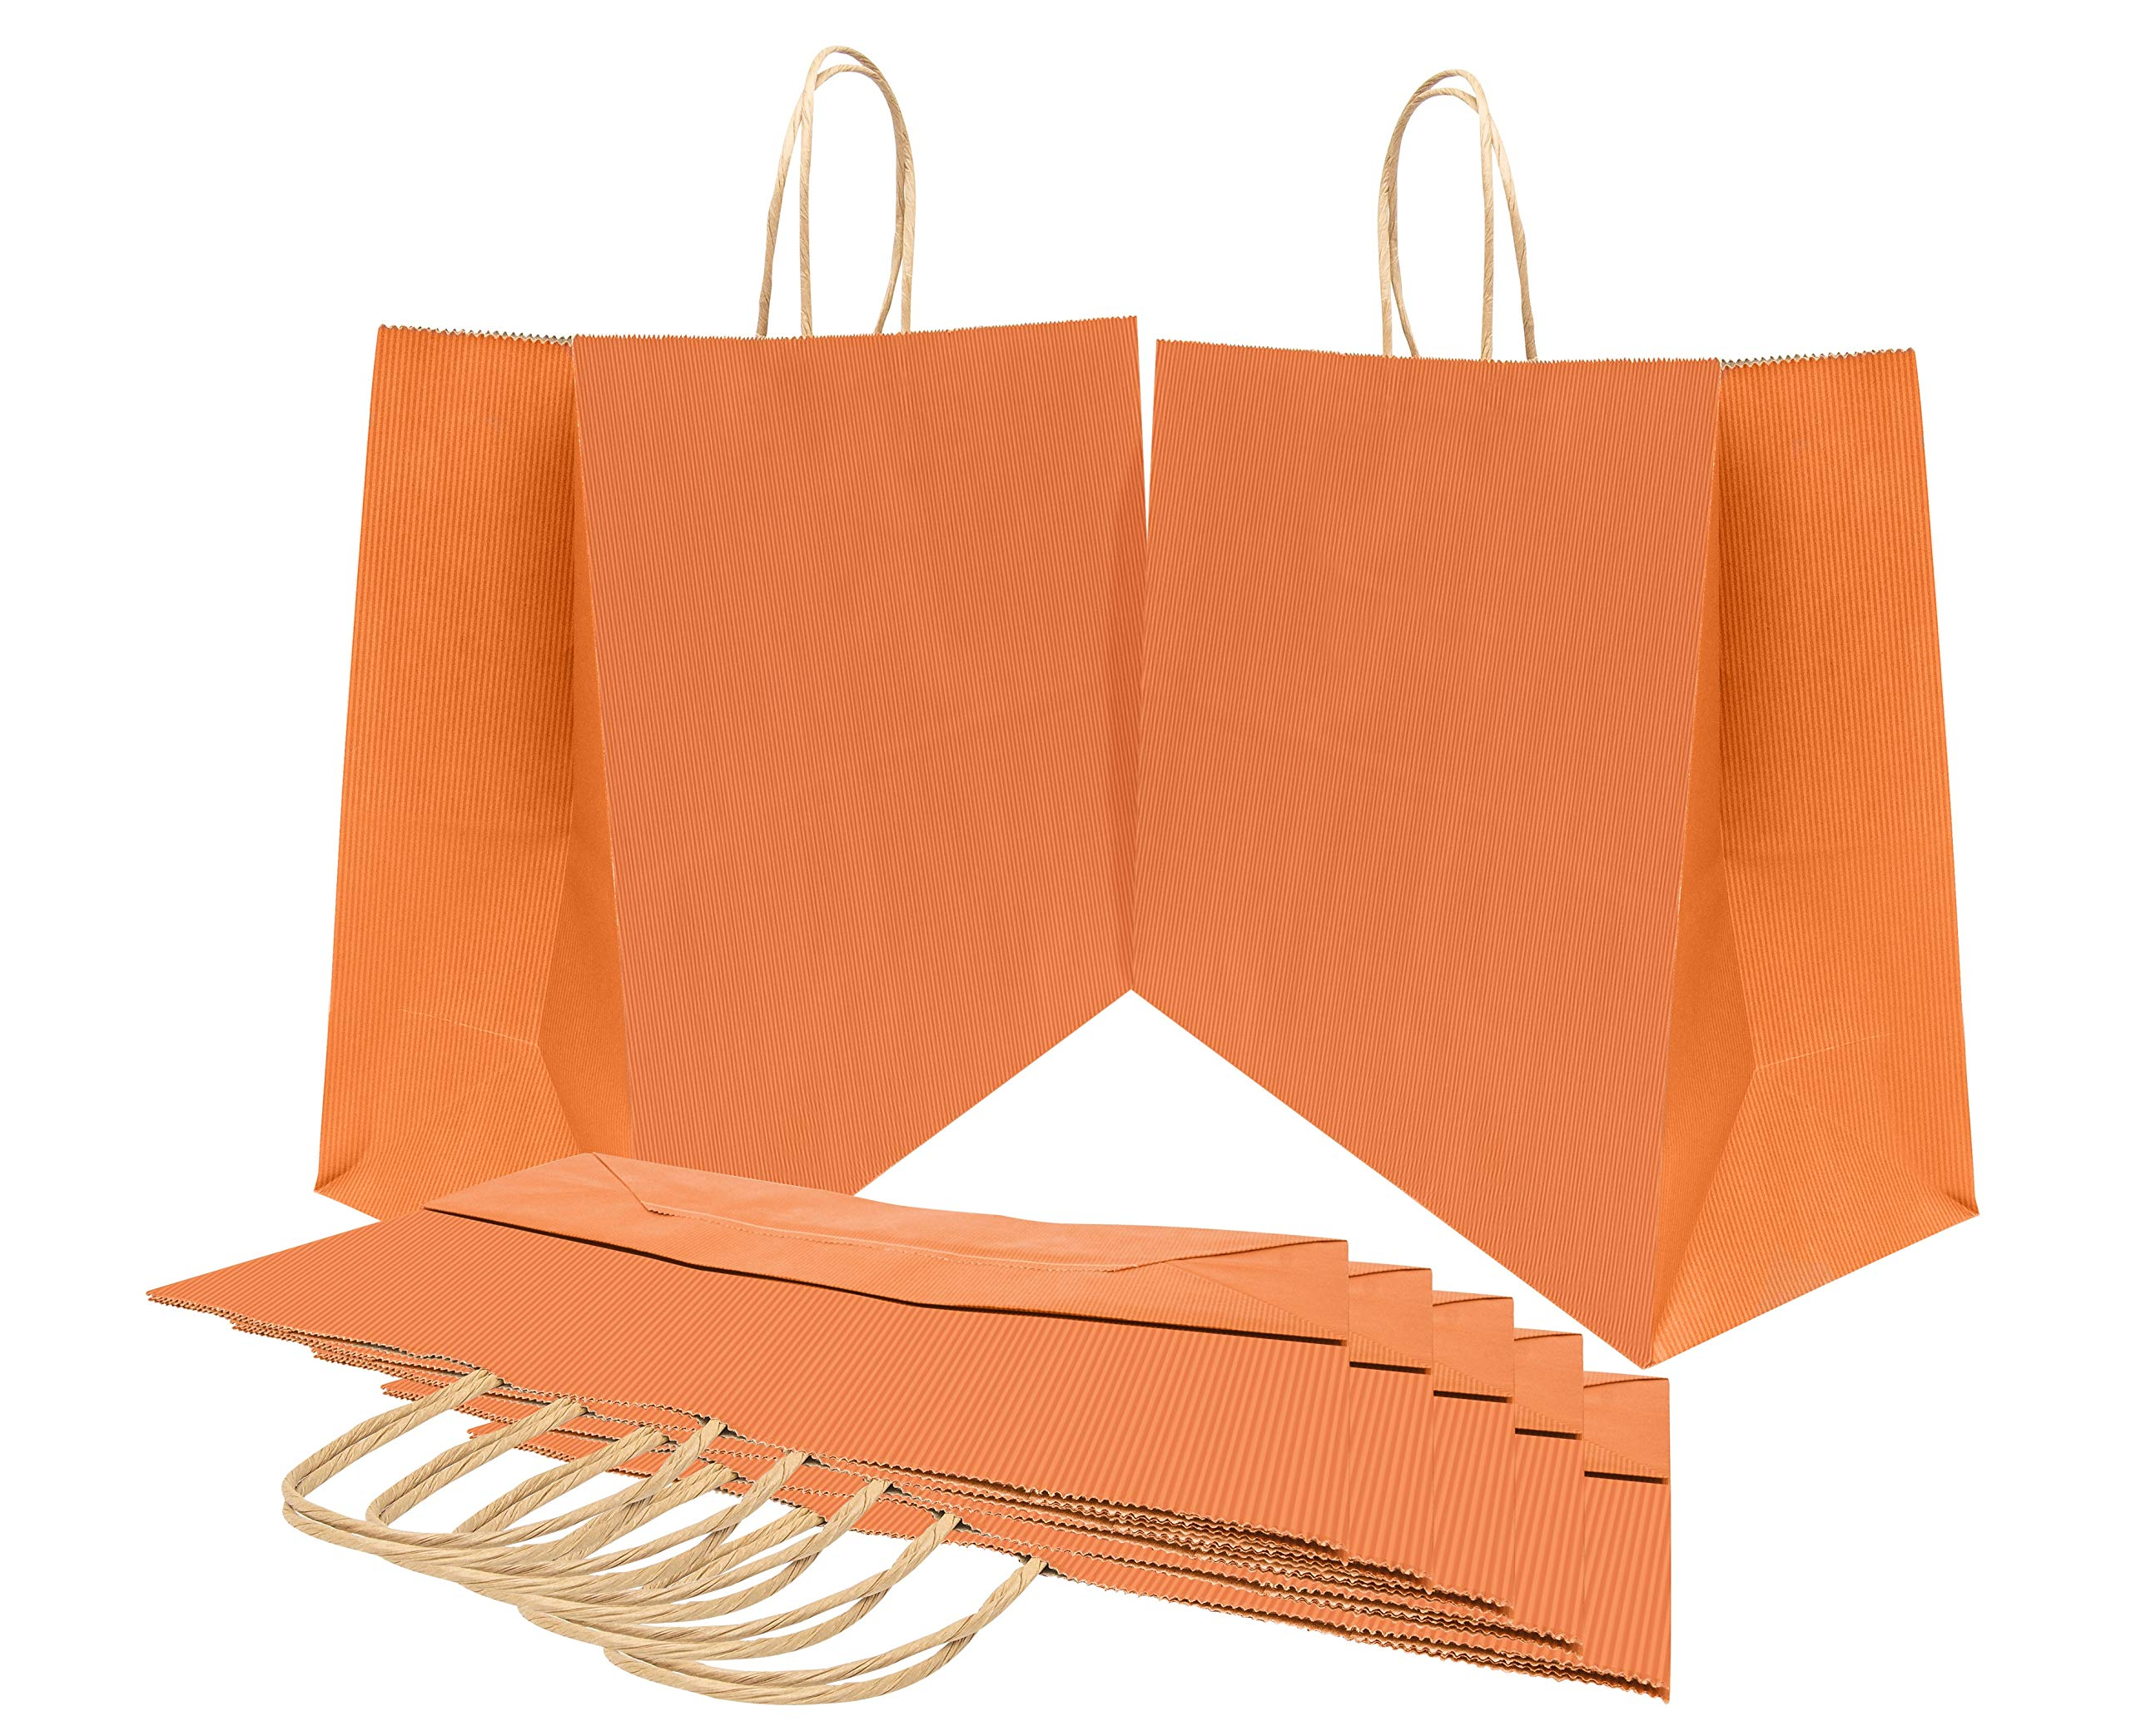 Paper Shopping Bags 16x6x12 Kraft paper bags 16 x 6 x 12 by Amiff. Pack of 25 Orange Retail bags. Kraft carrier bags with handles for Shopping, Merchandise and Grocery. Strong, Reusable.